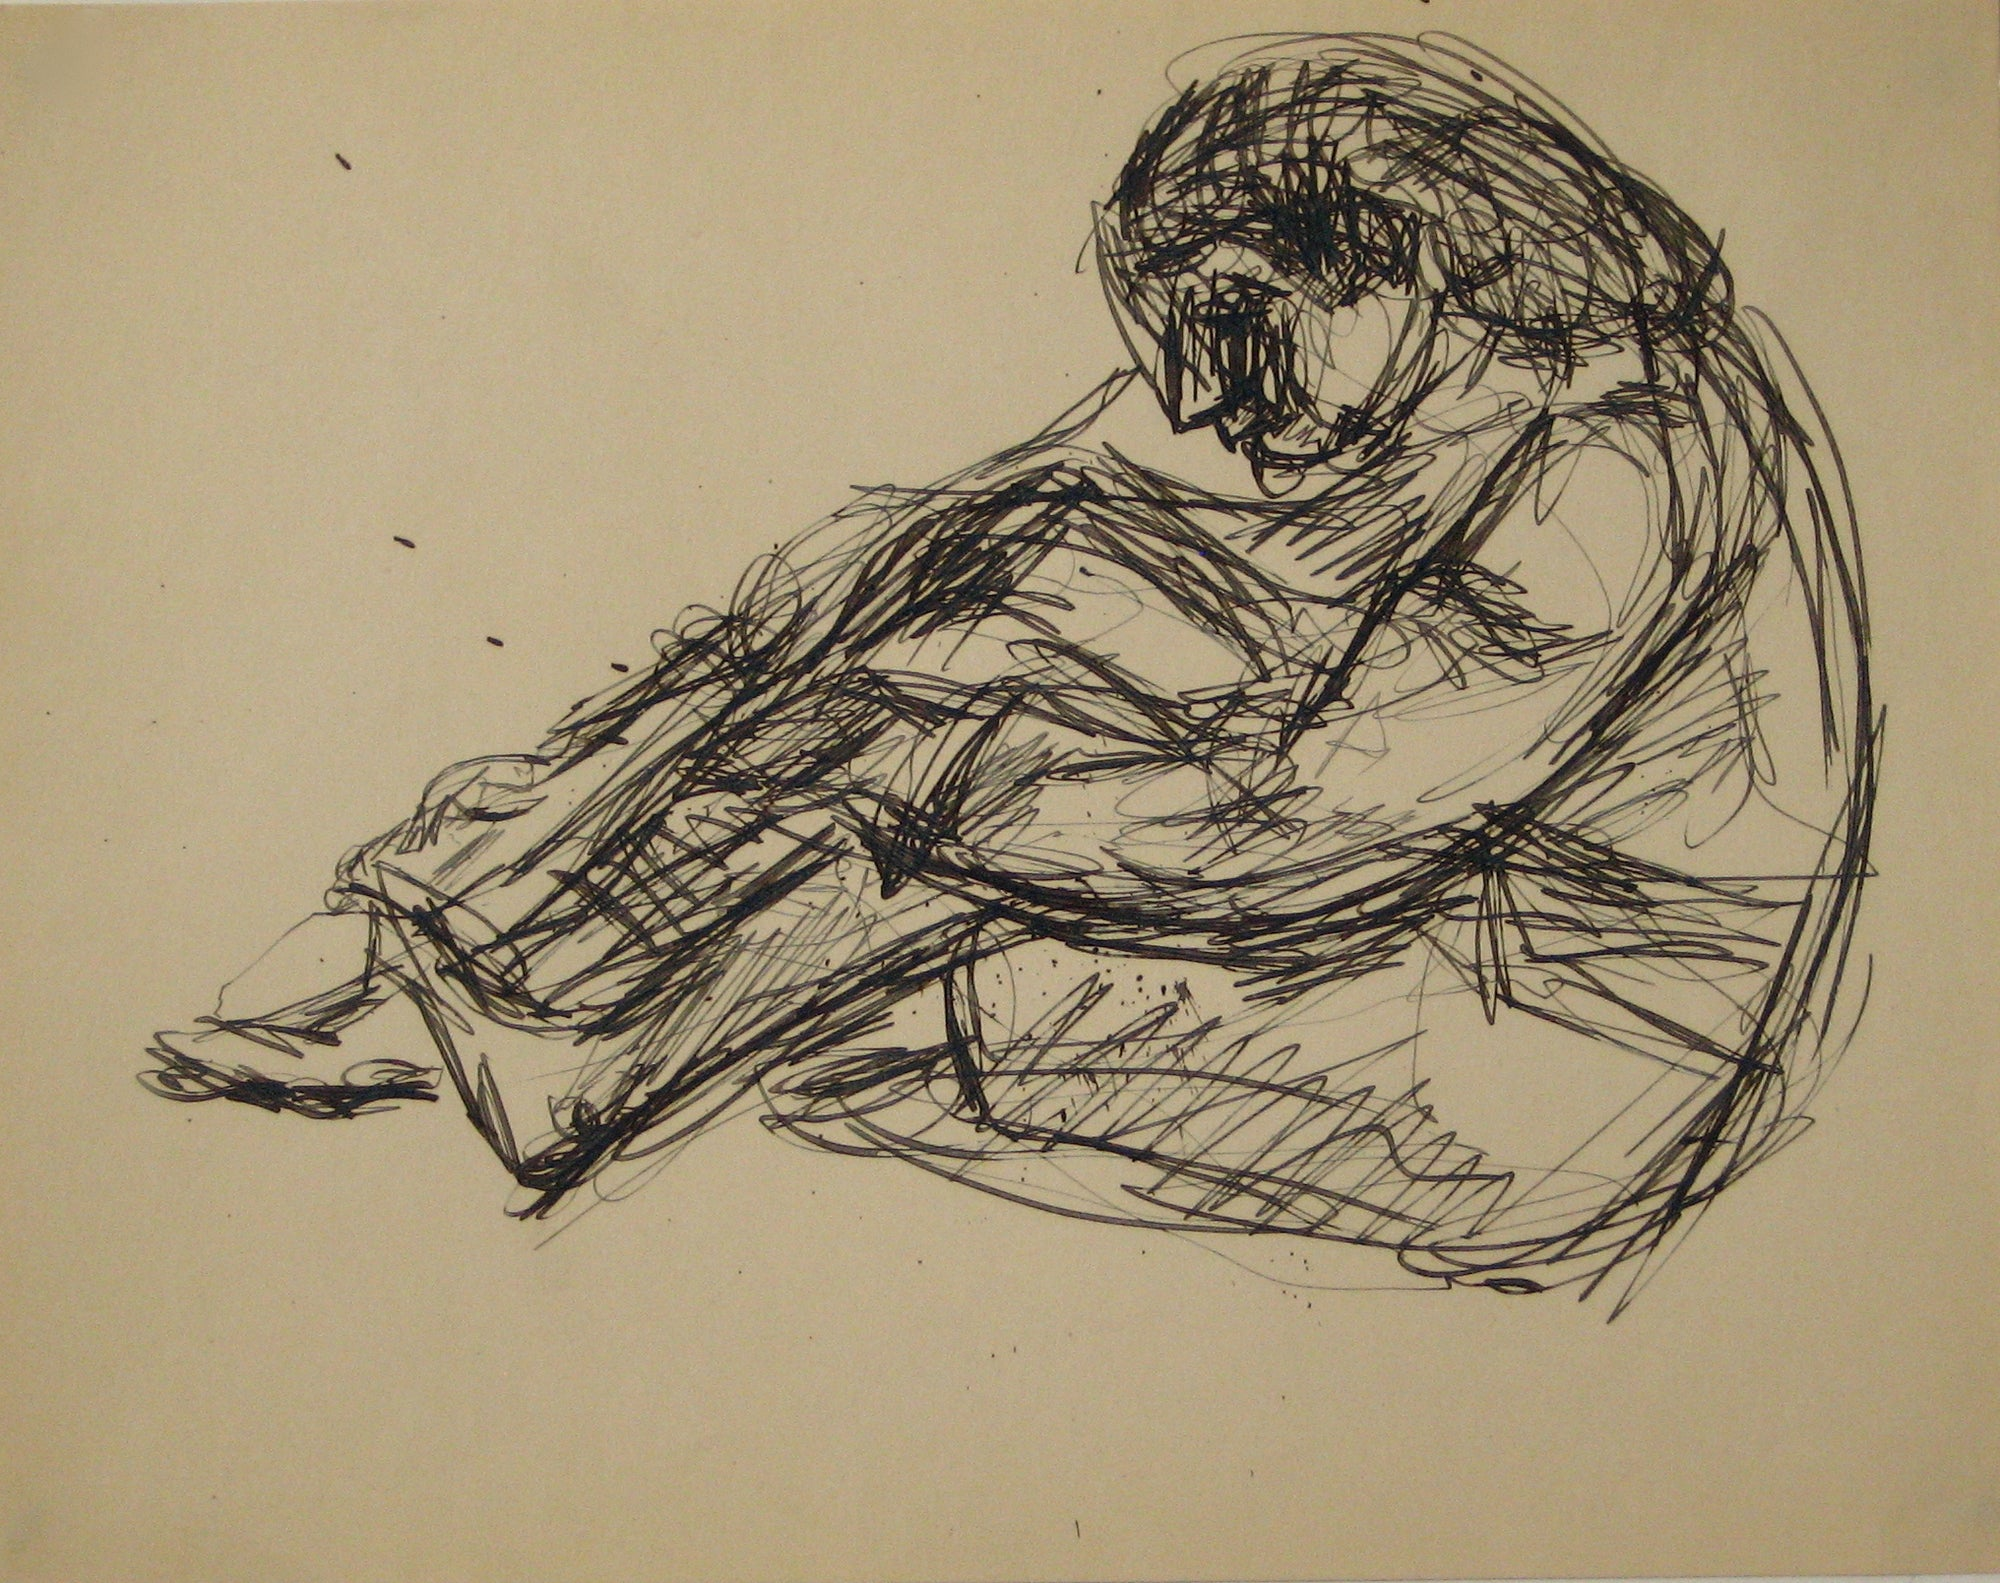 Seated Monochrome Figure Sketch <br>Early to Mid 20th Century Ink on Paper <br><br>#14289